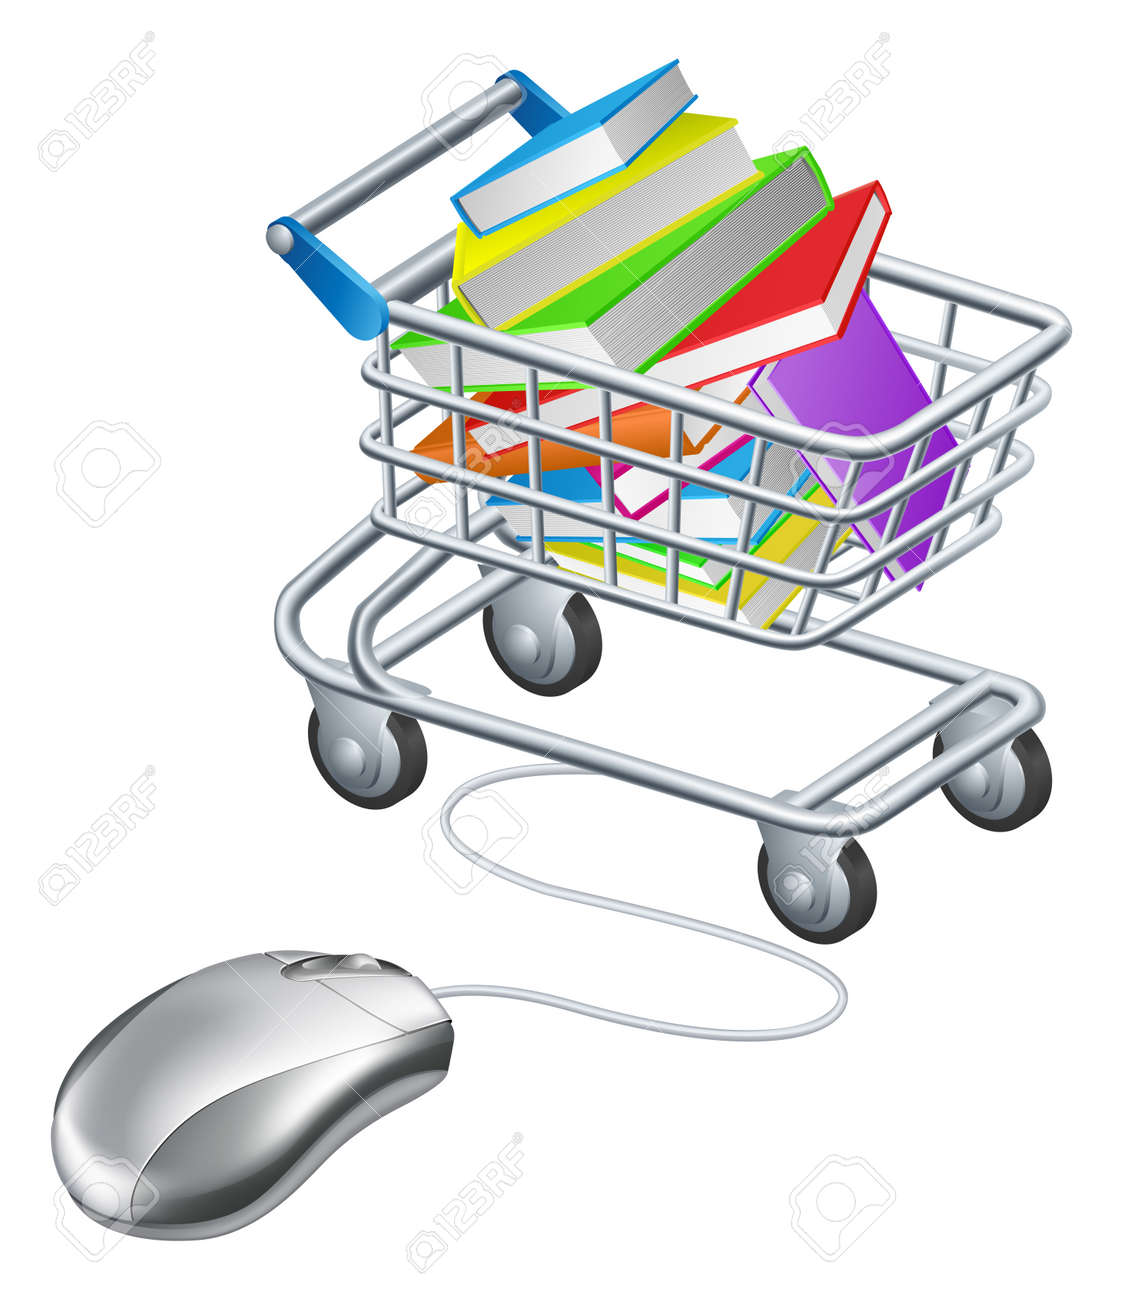 Books in a shopping trolley or cart connected to computer mouse, concept for online education or shopping for books on the internet - 27225705